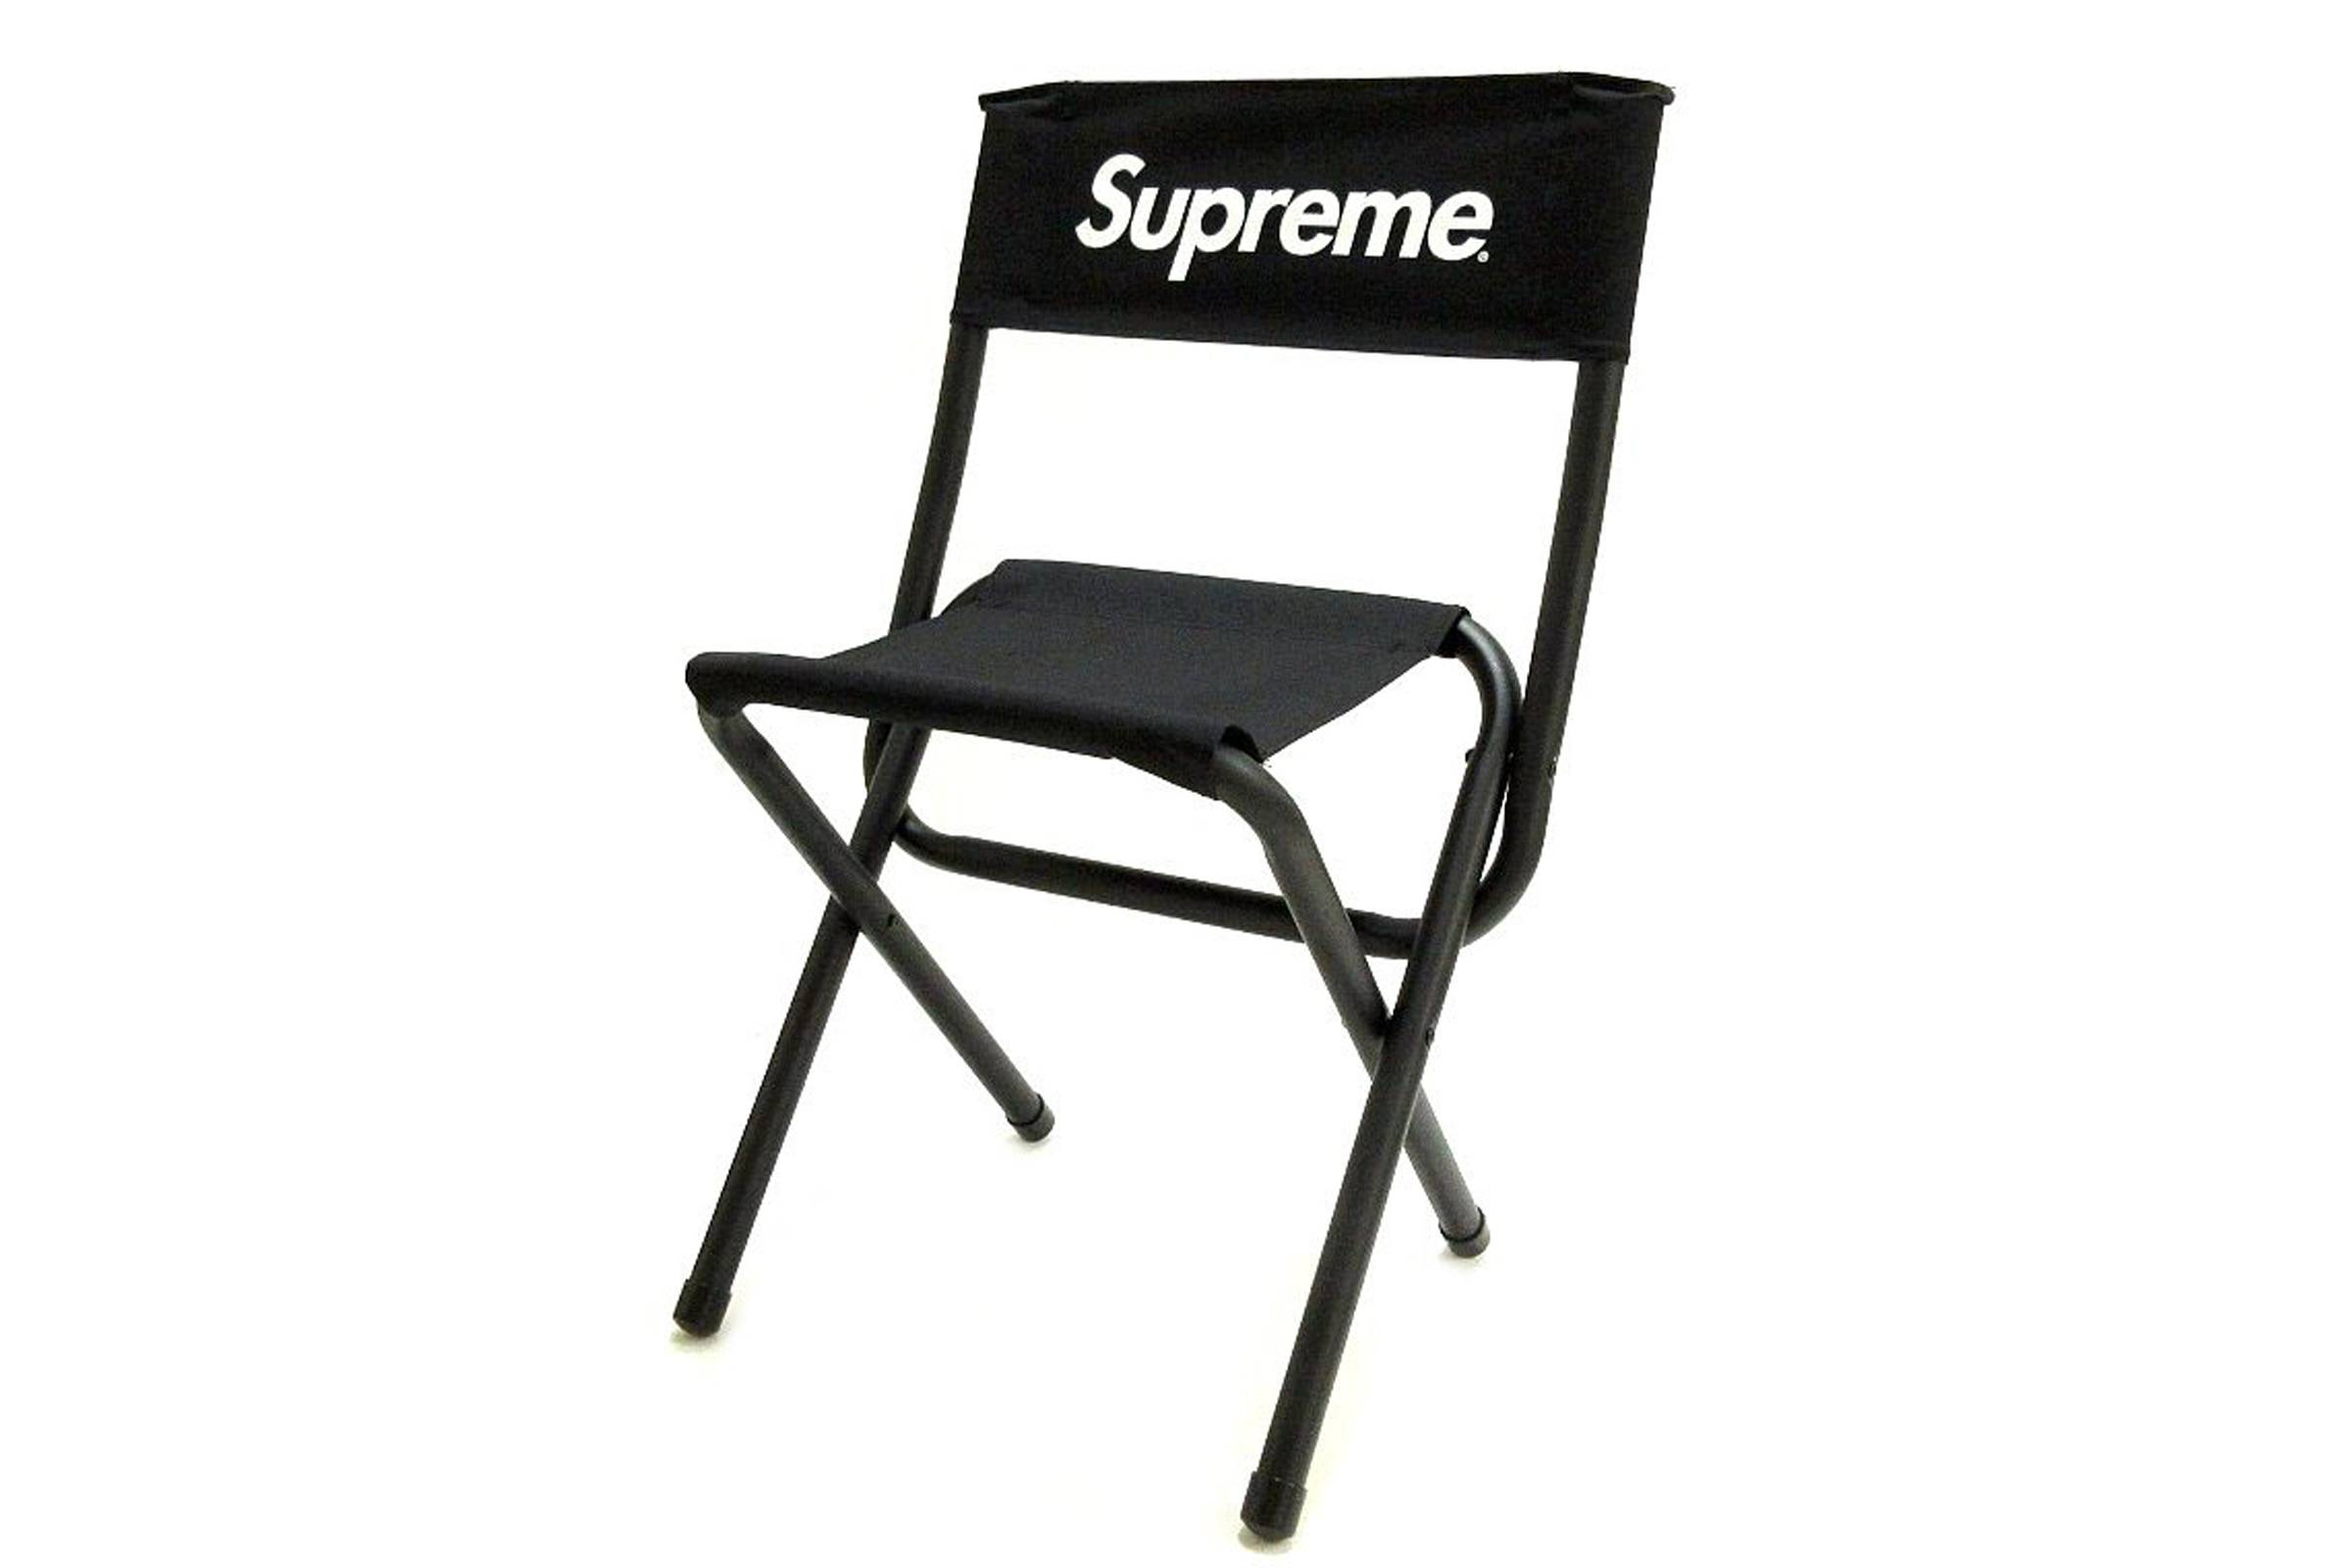 Supreme x Coleman Folding Chair (Spring/Summer 2015)